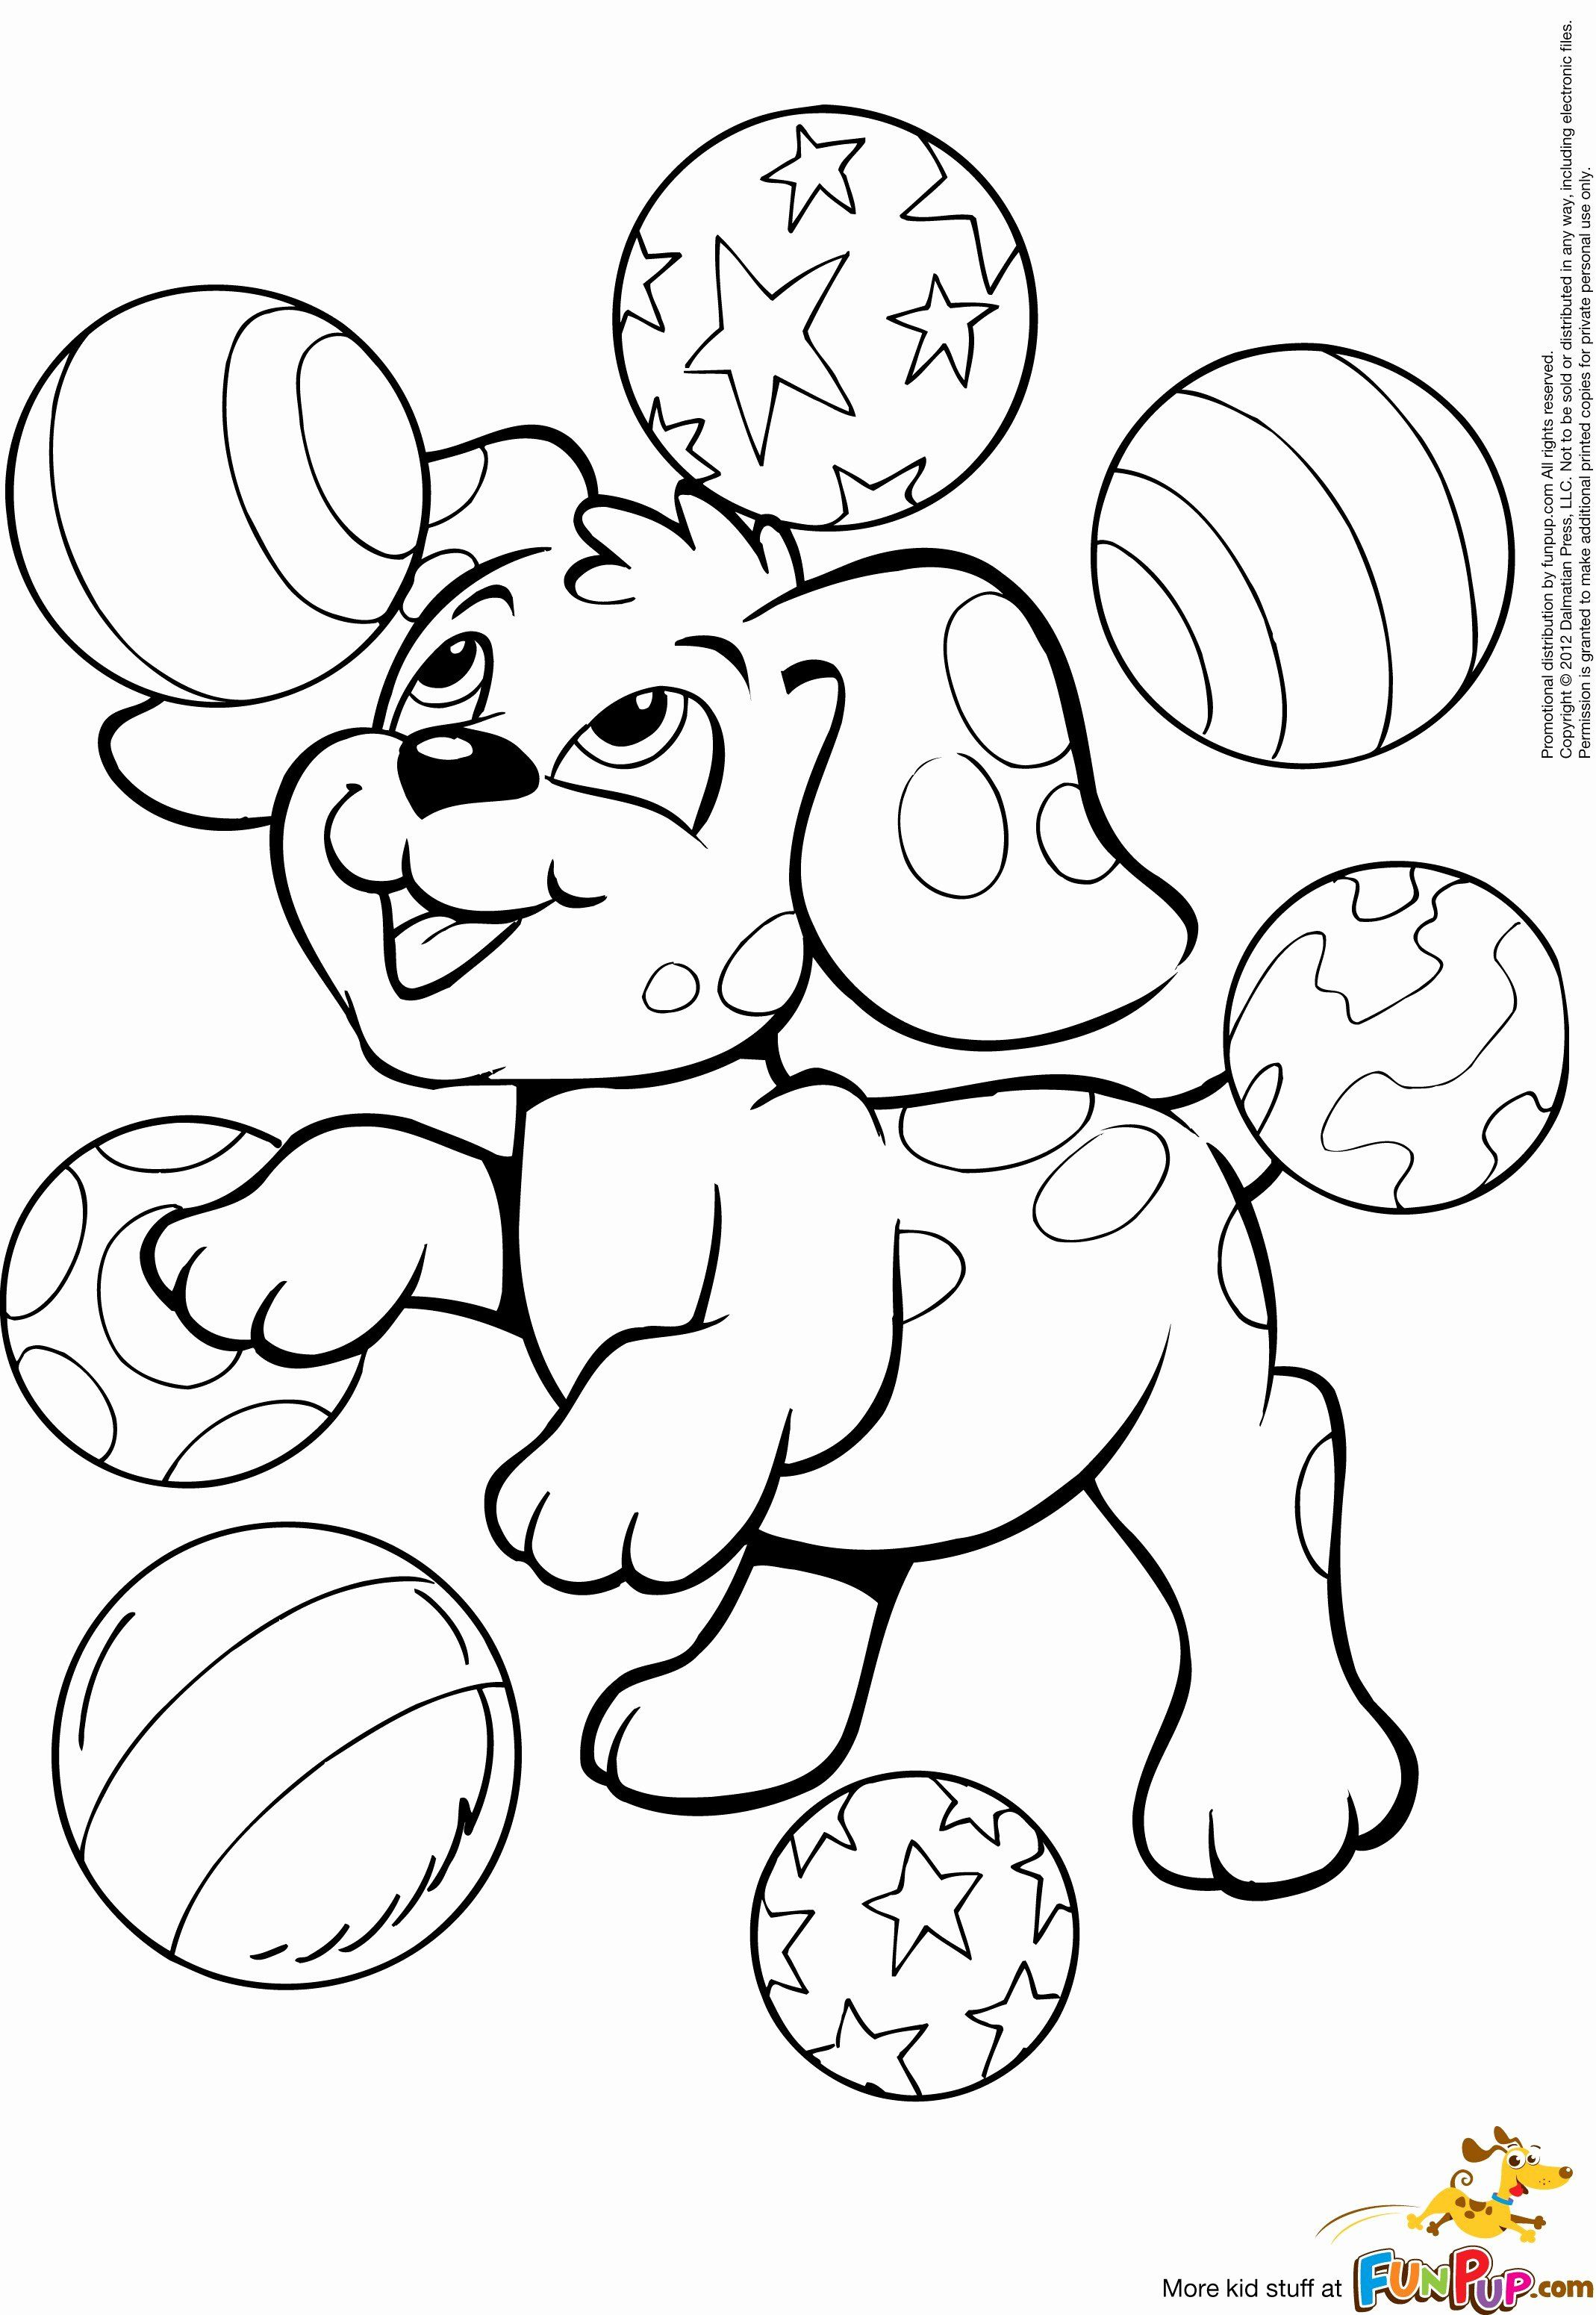 Cute Puppy Coloring Pages Printable Lovely Of Free Coloring Pages Puppies Sabadaphnecottage In 2020 Puppy Coloring Pages Cool Coloring Pages Free Coloring Pages